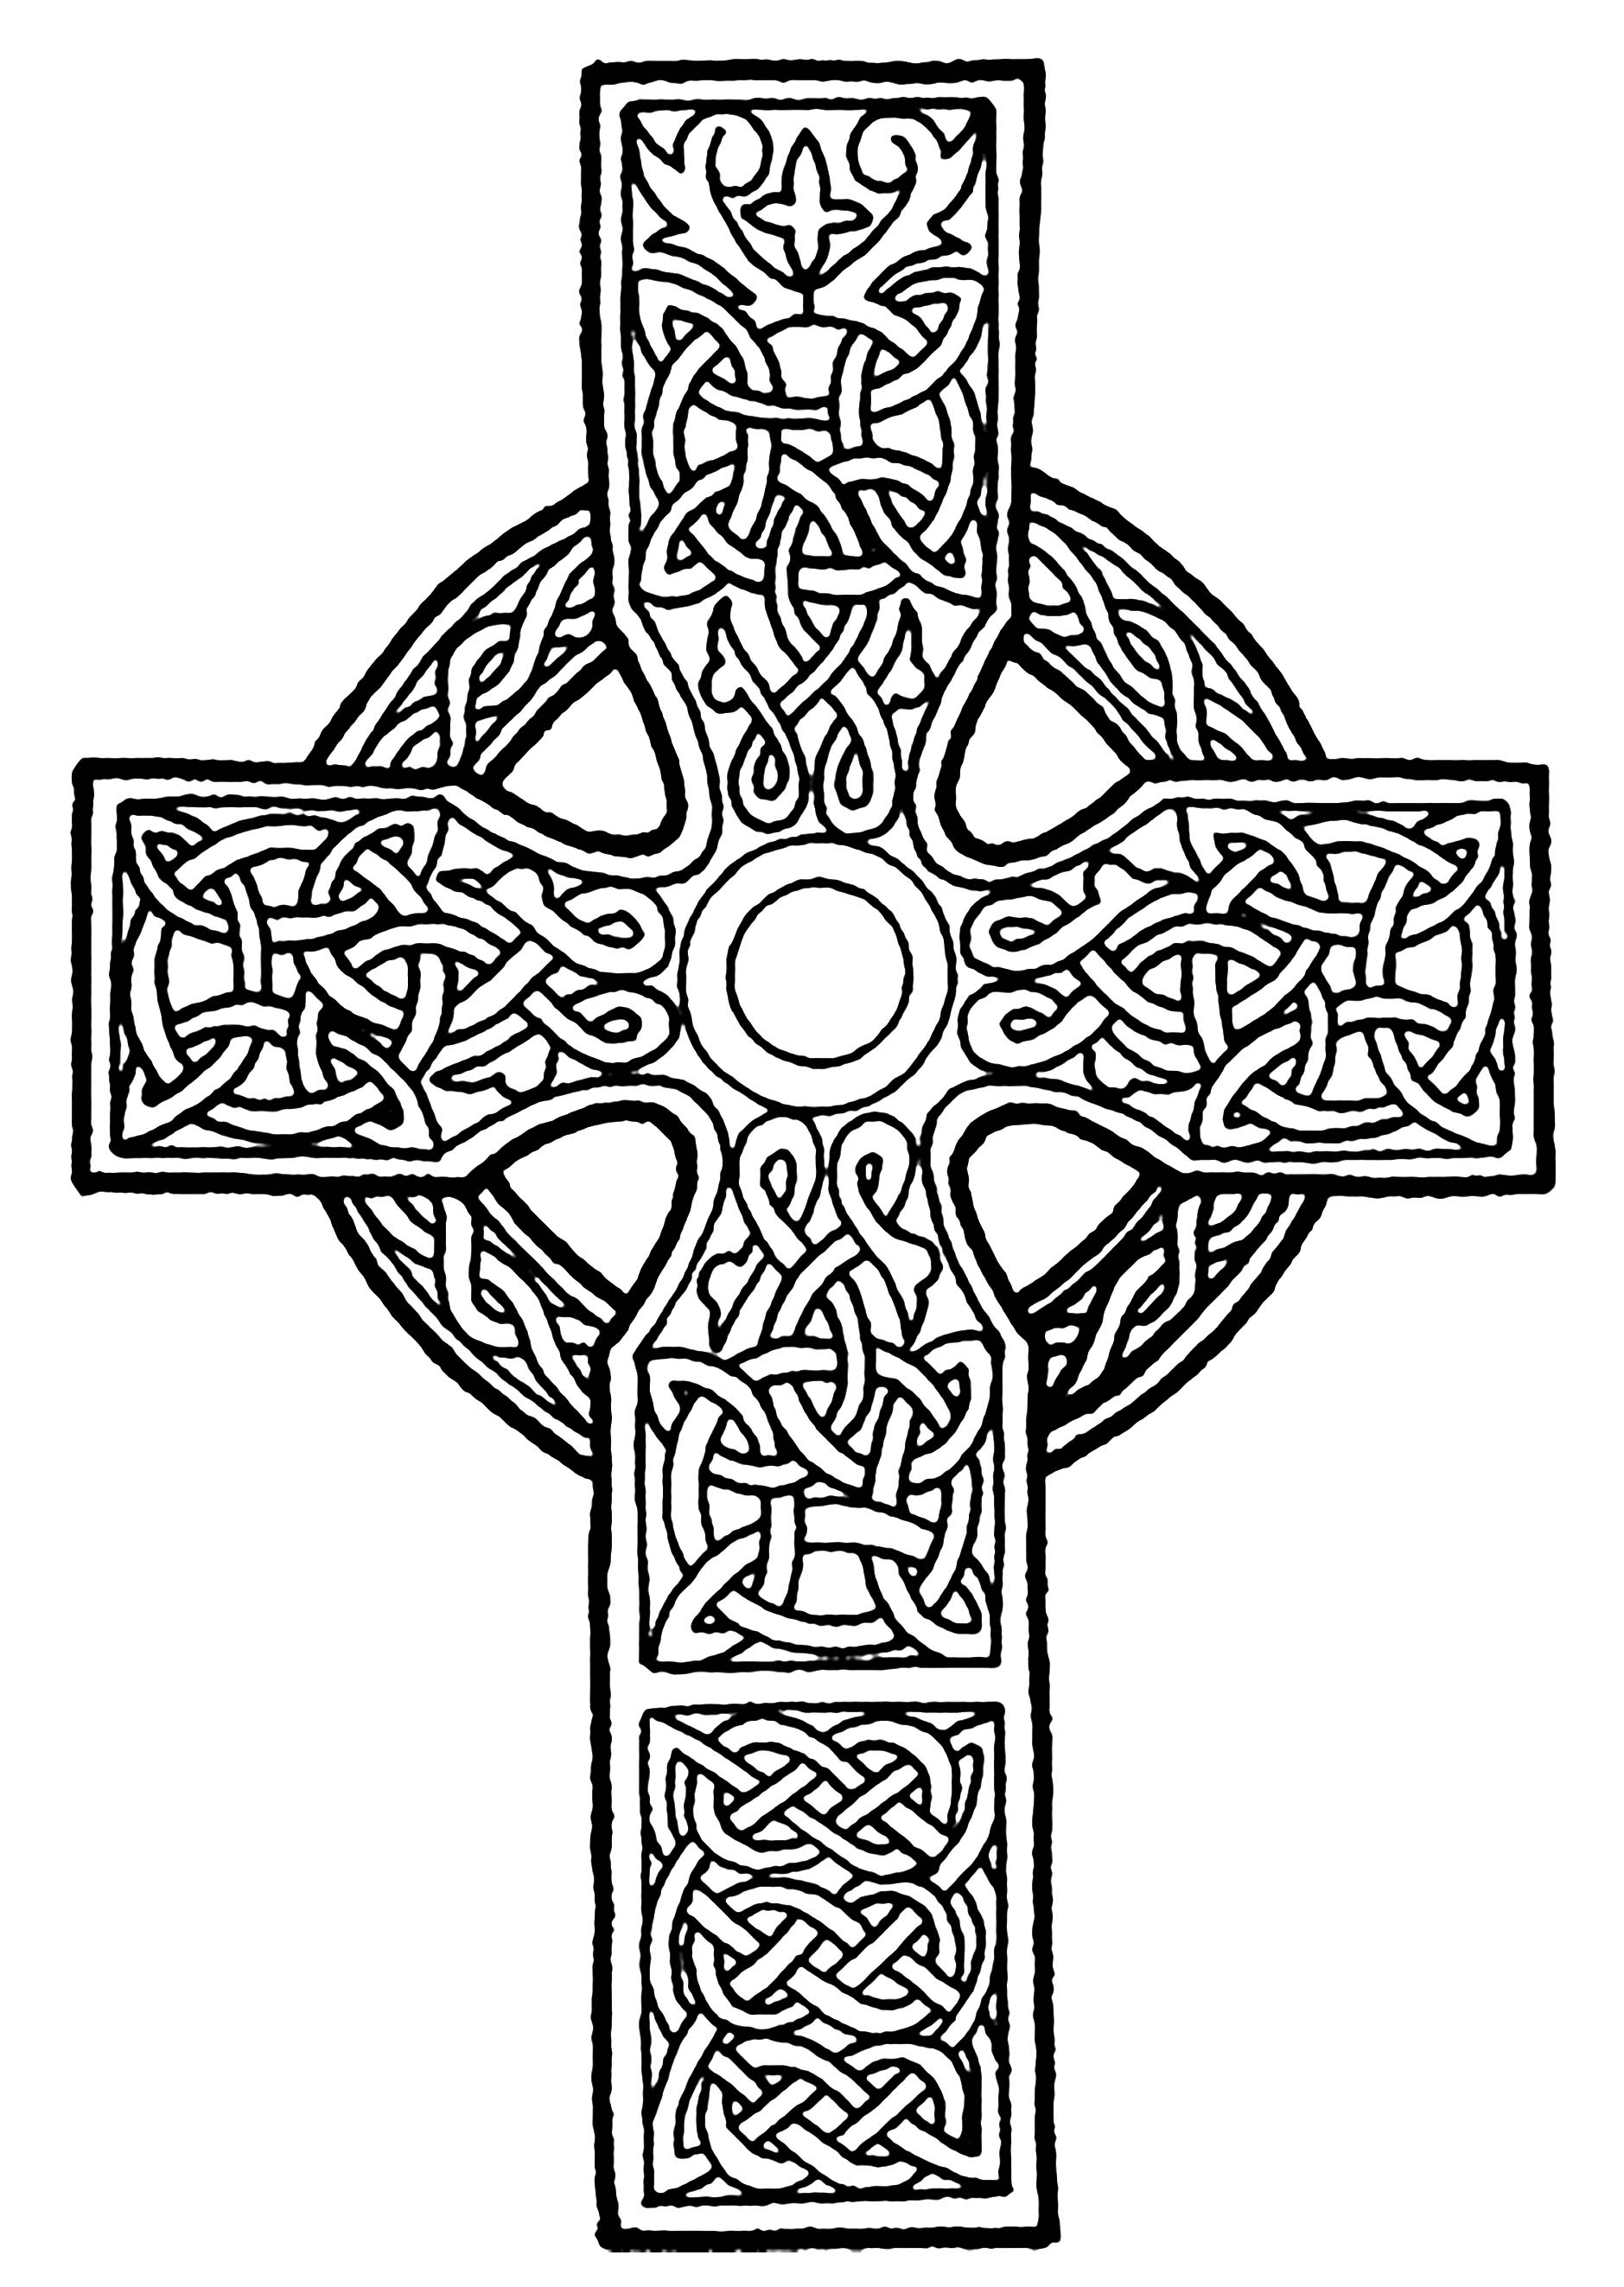 coloring sheet cross coloring pages cornish celtic cross coloring pages best place to color cross coloring pages sheet coloring